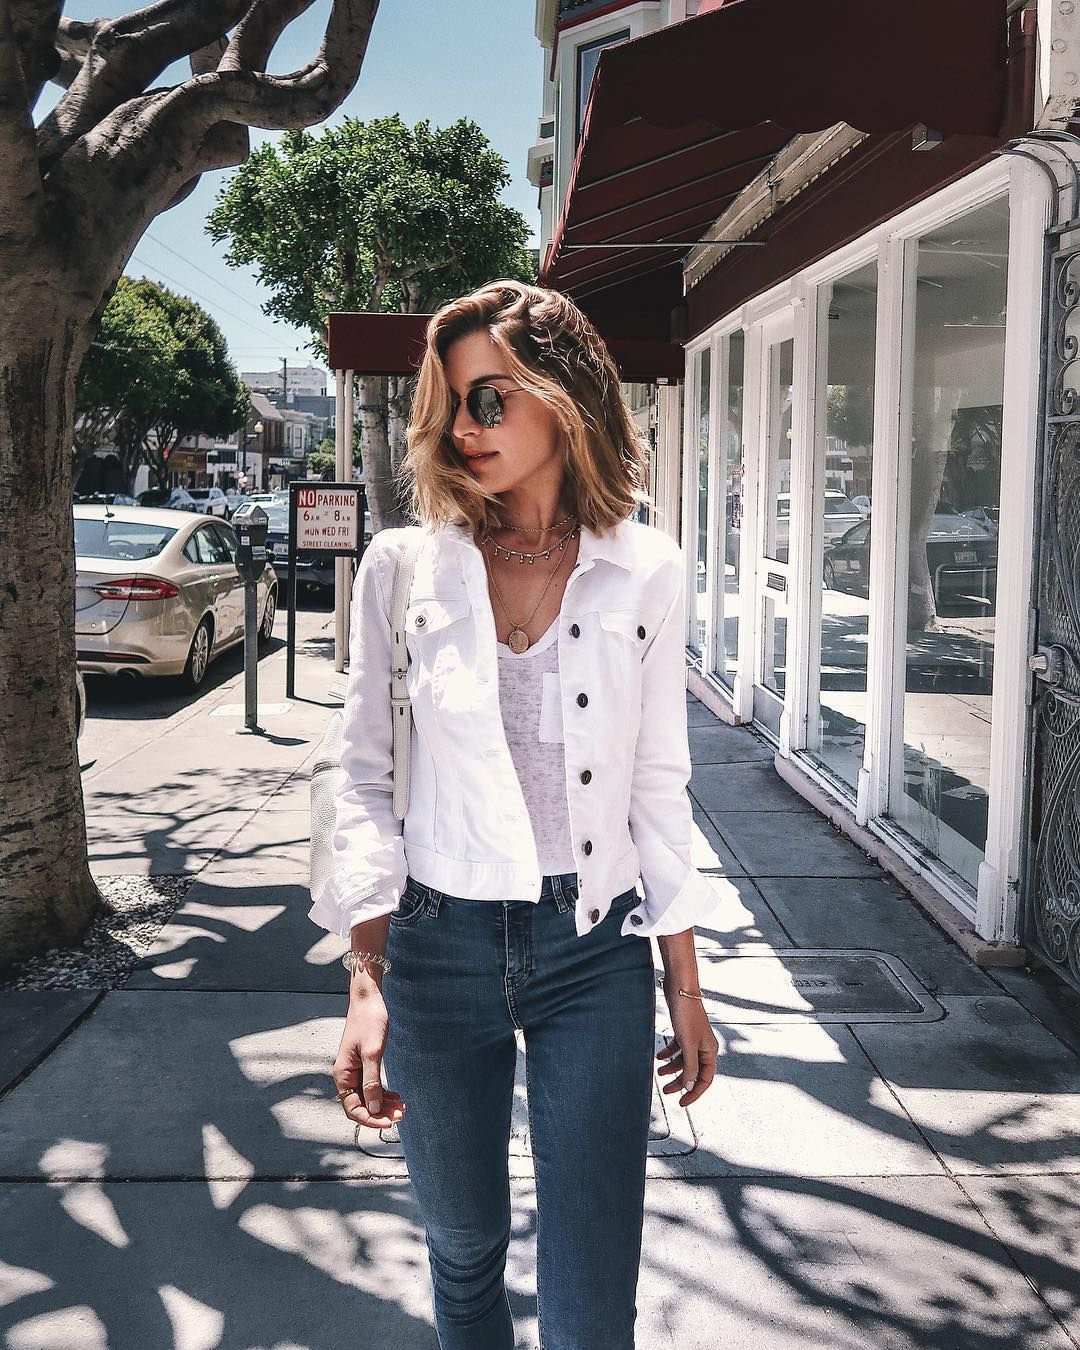 Nichole Ciotti On Instagram Bouncing Around The City Today Thinking About All Those Who Sacrificed Denim Jacket Women White Jacket Outfit White Denim Jacket